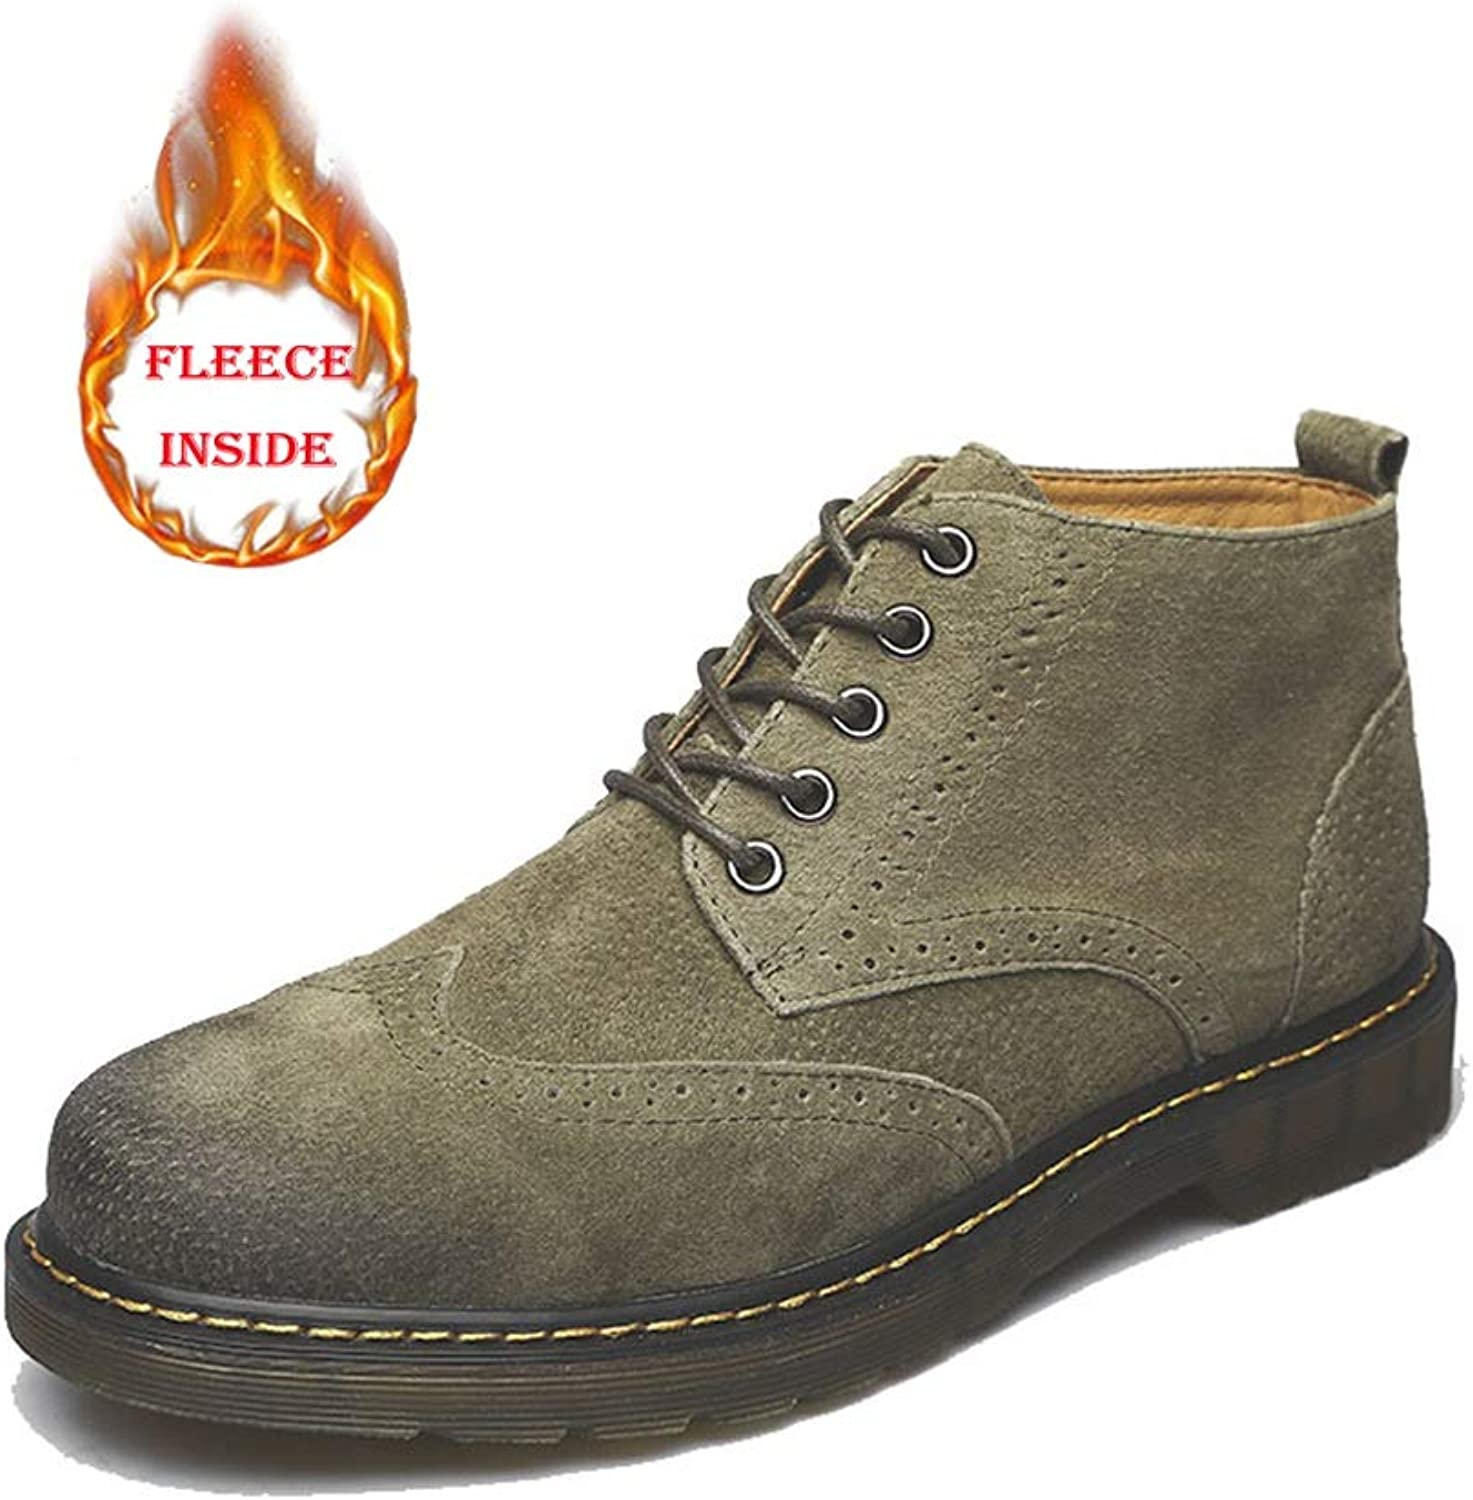 HYF Men's Fashion Ankle Boots Casual Retro Comfortable And Wearable Boots Winter